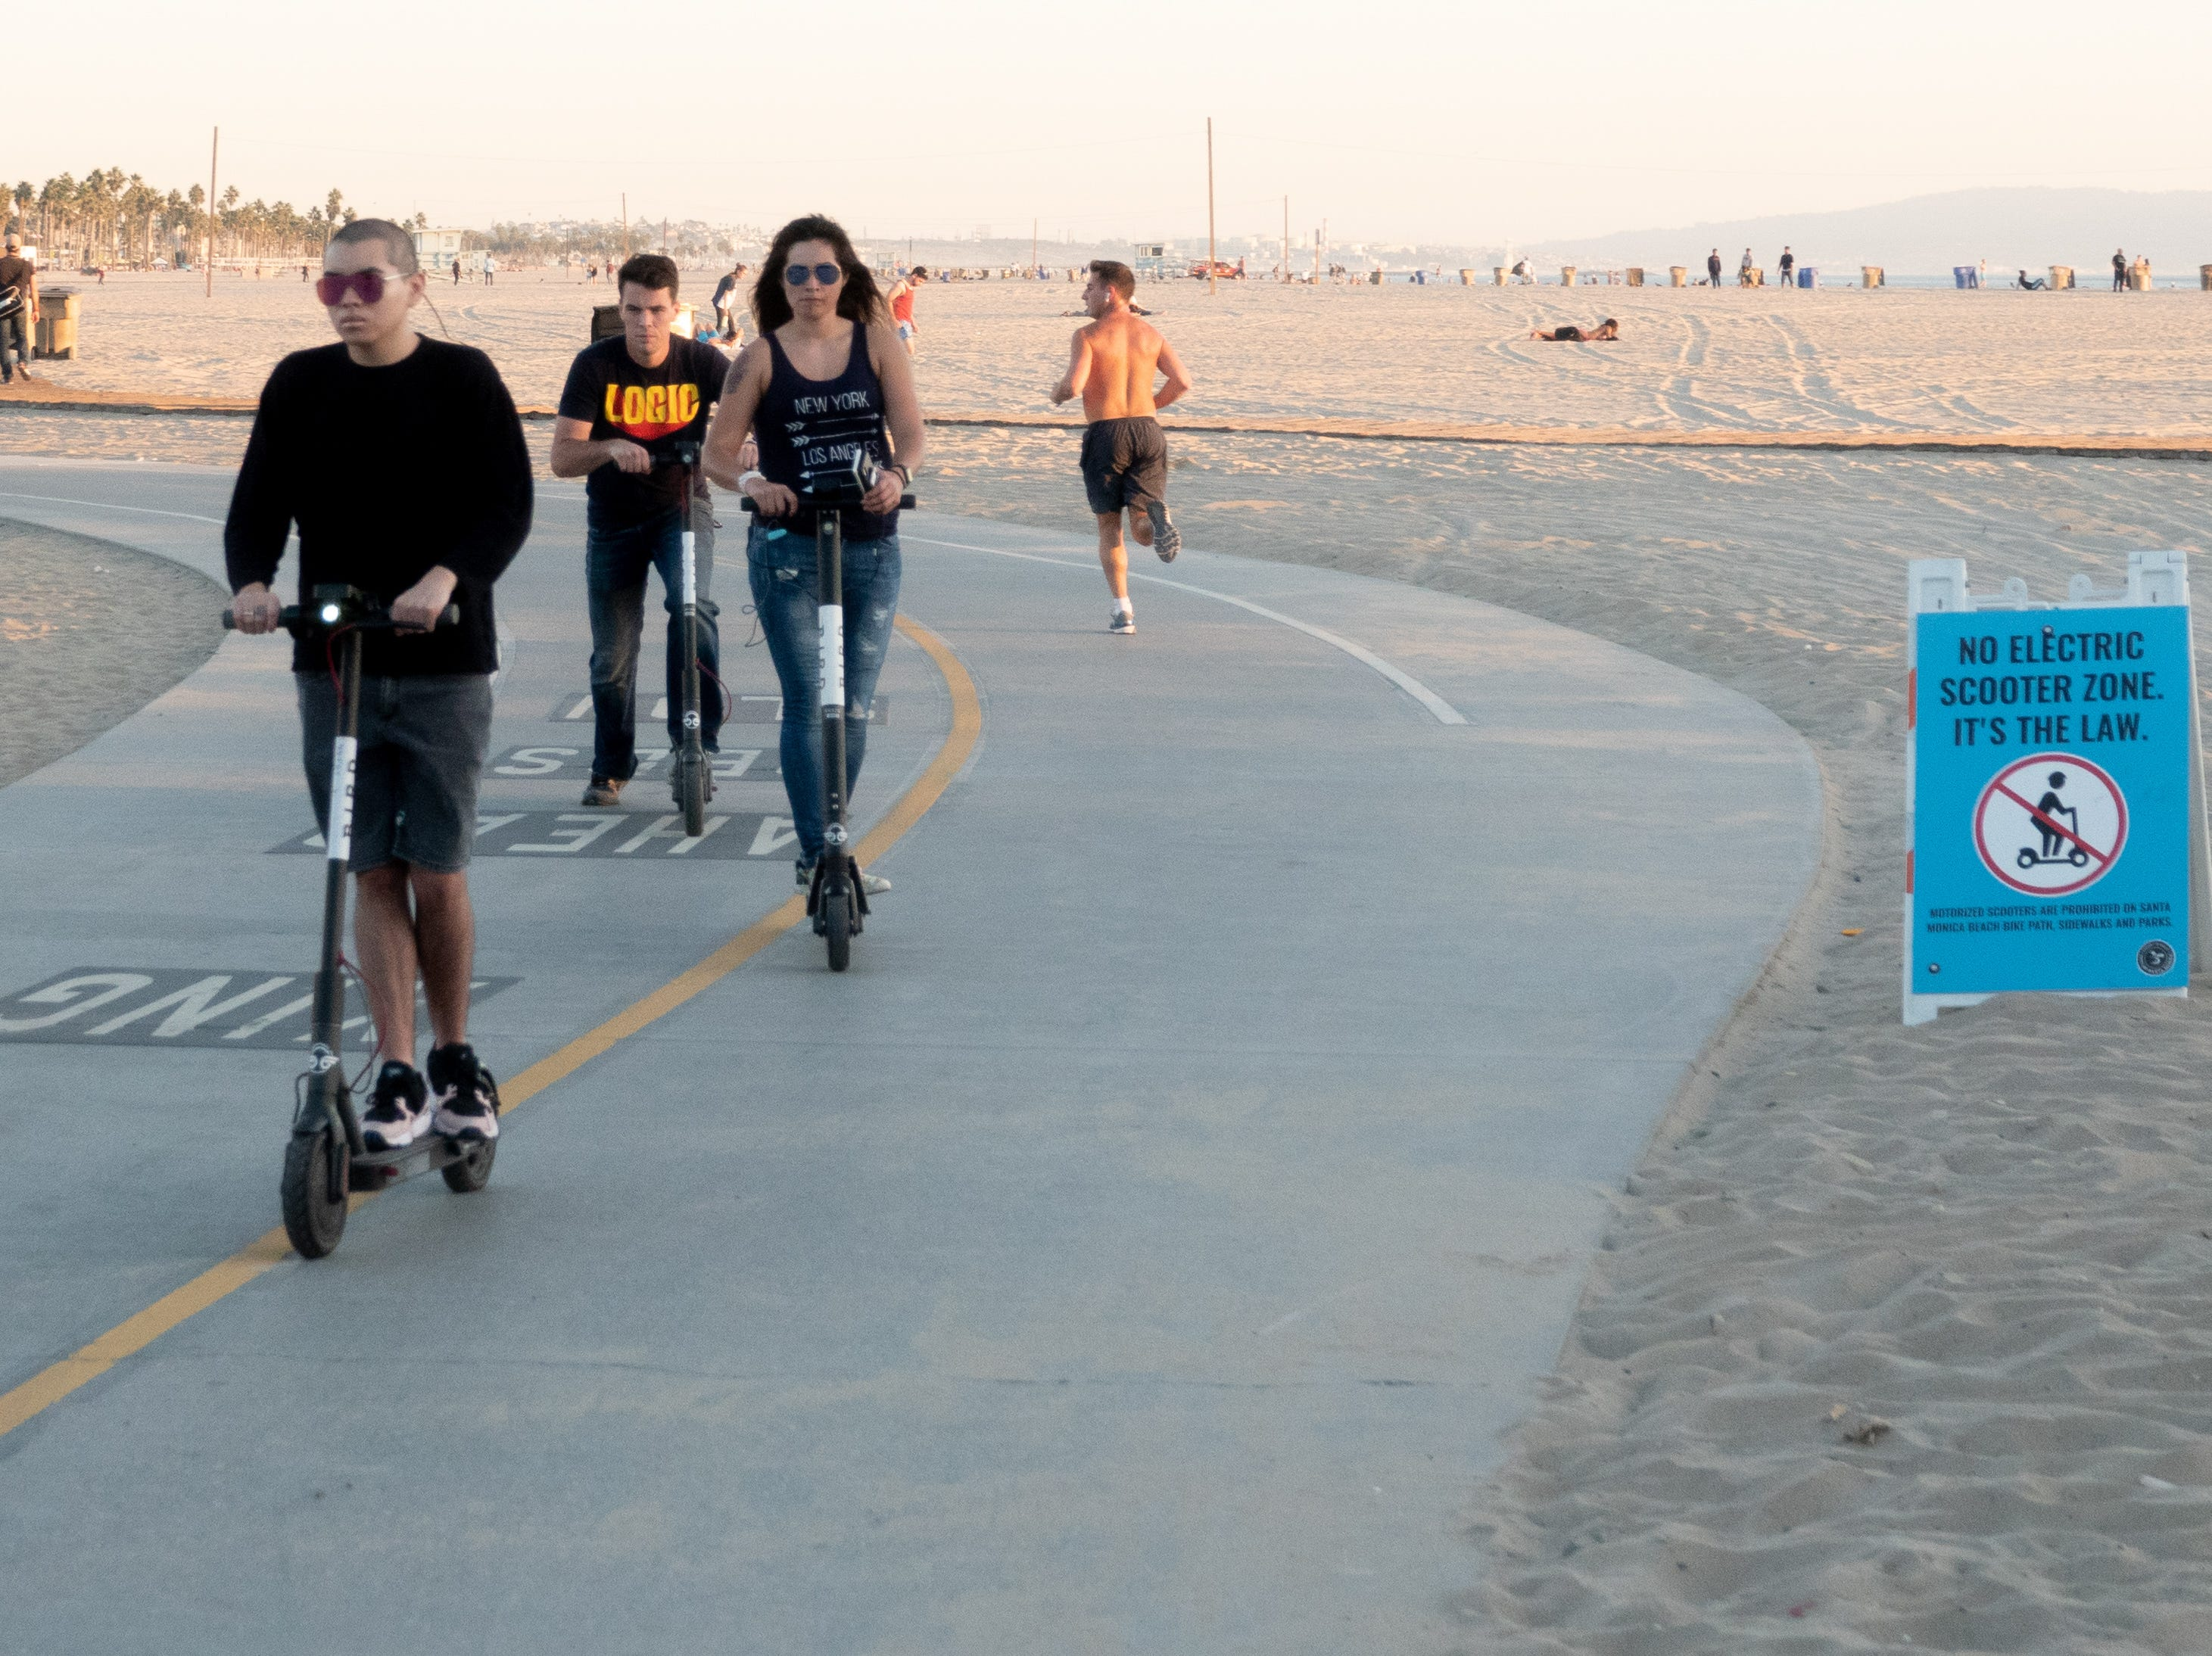 Electric scooter riders not obeying the law in Santa Monica